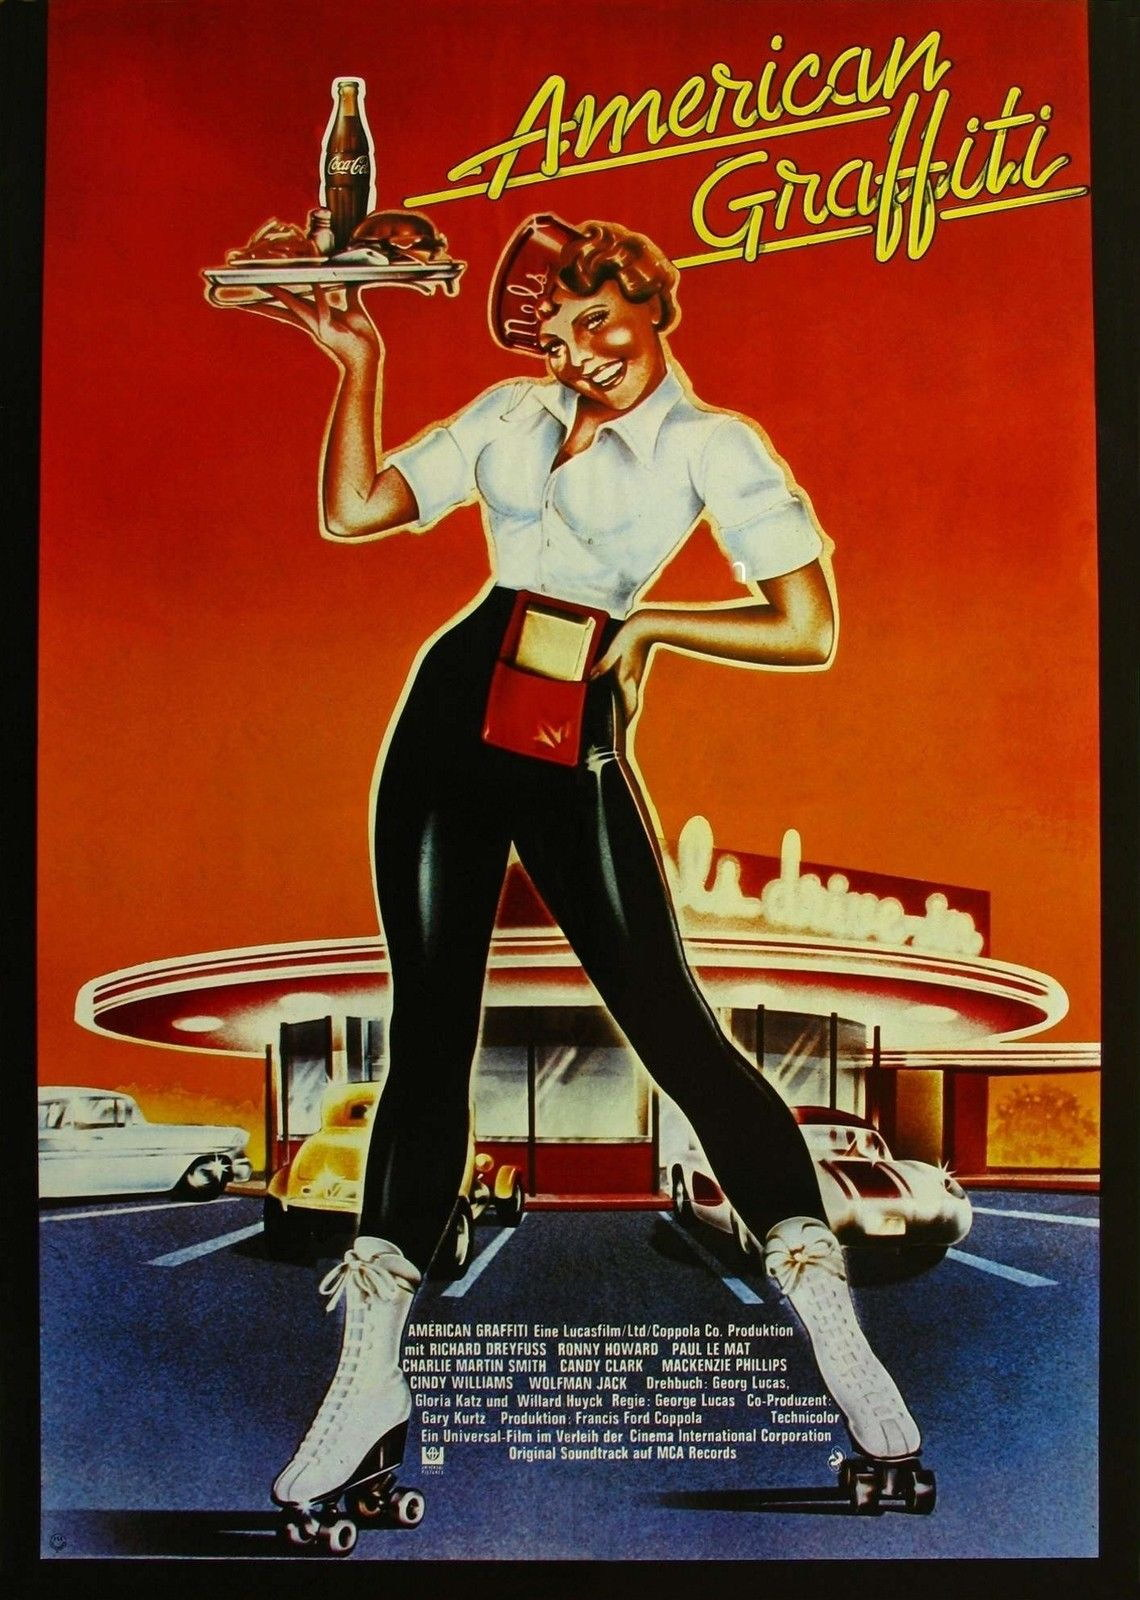 72530 AMERICAN GRAFFITI Movie Wall Print Poster Affiche